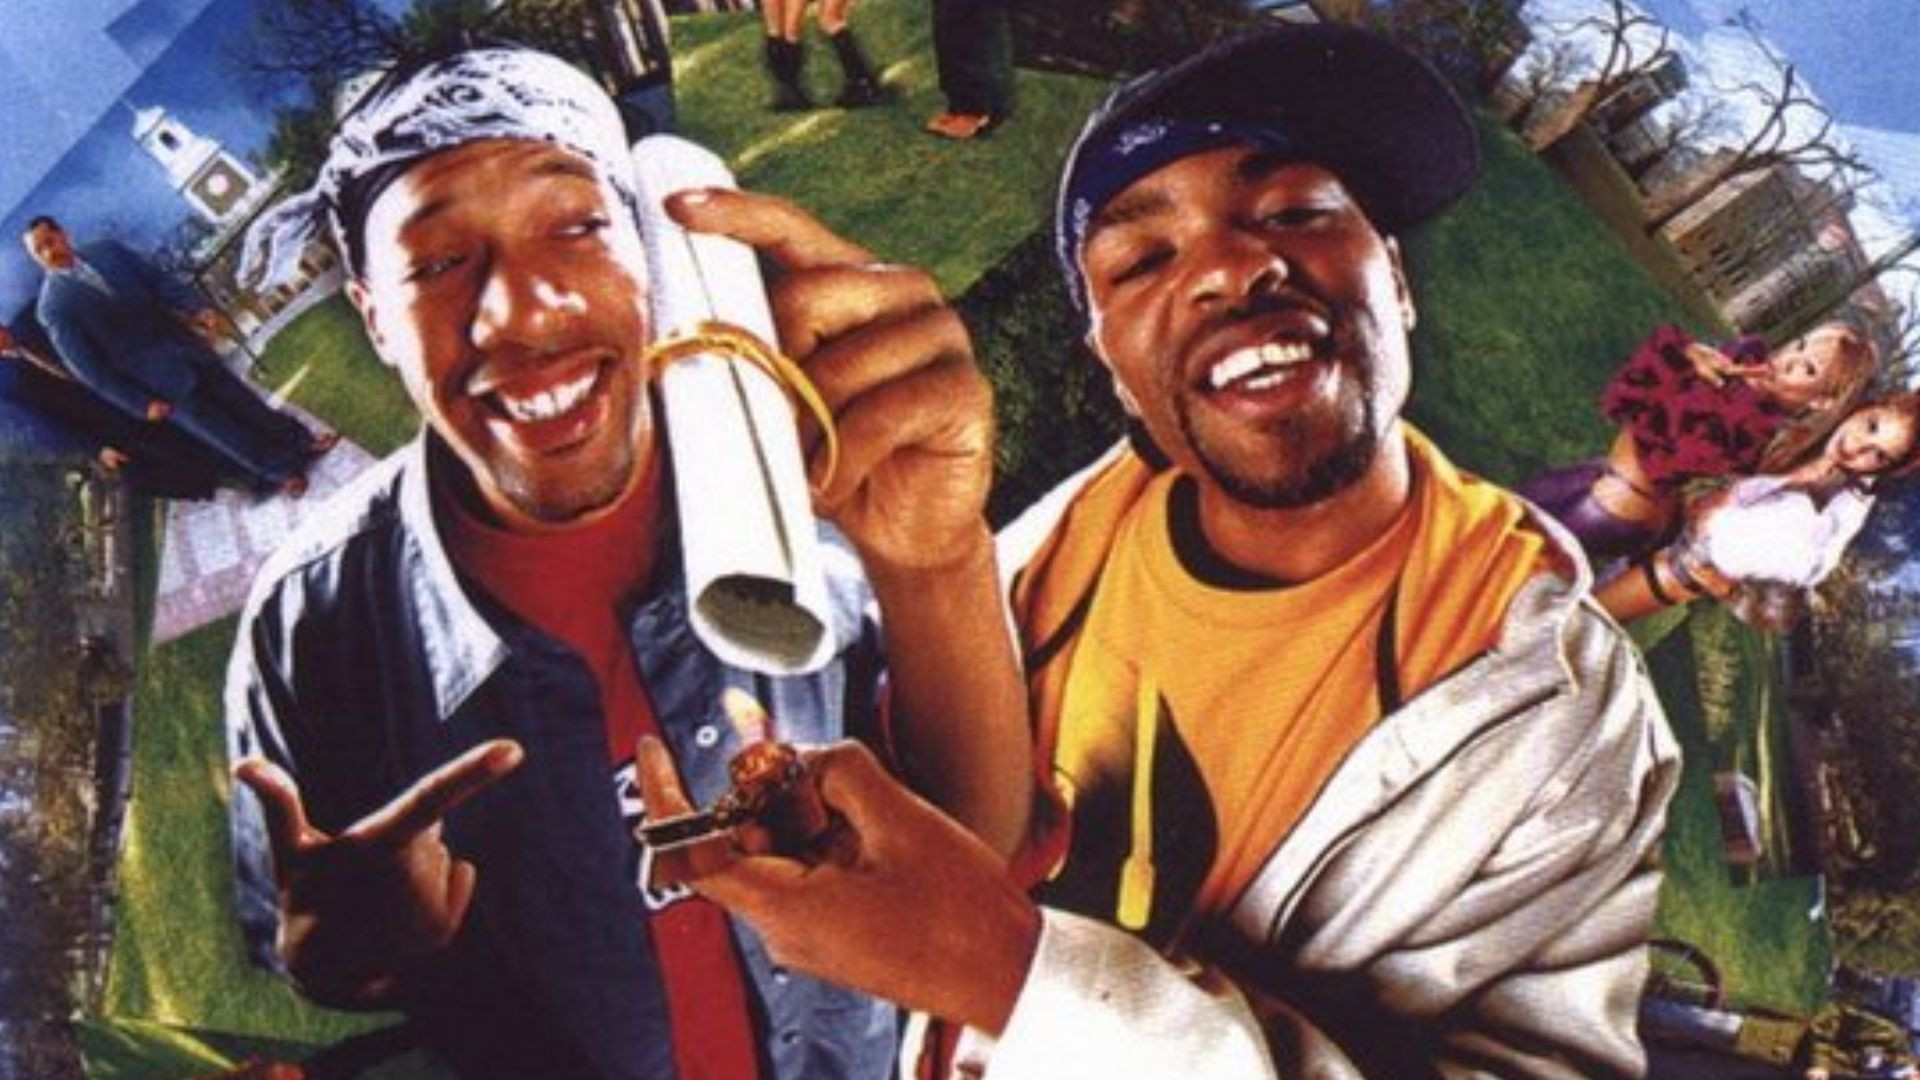 Redman Says: How High Part 2 Will Definitely Happen - The Smokers Club